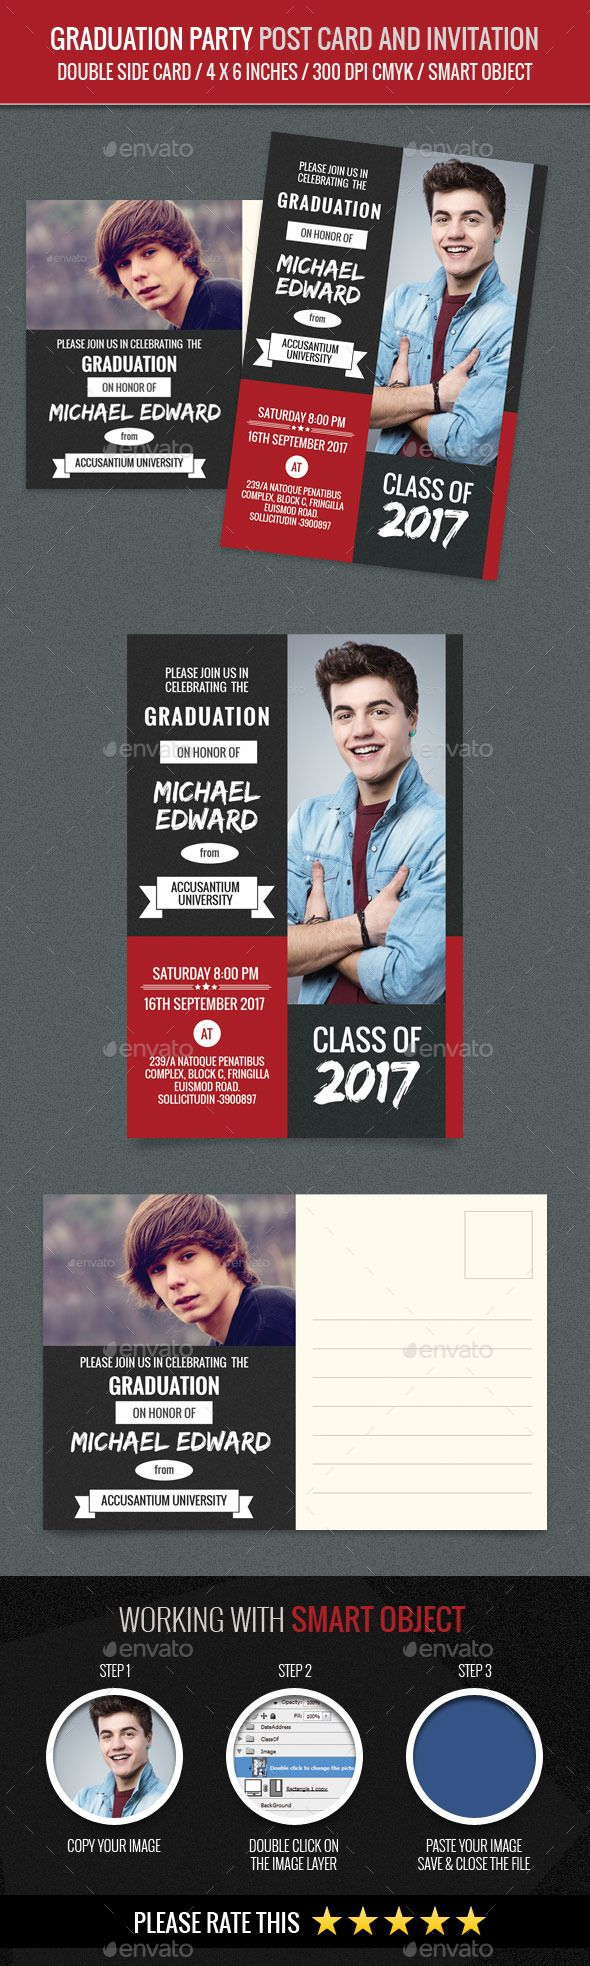 Graduation Party Post Card and Invitation Card Tem | Pinterest ...